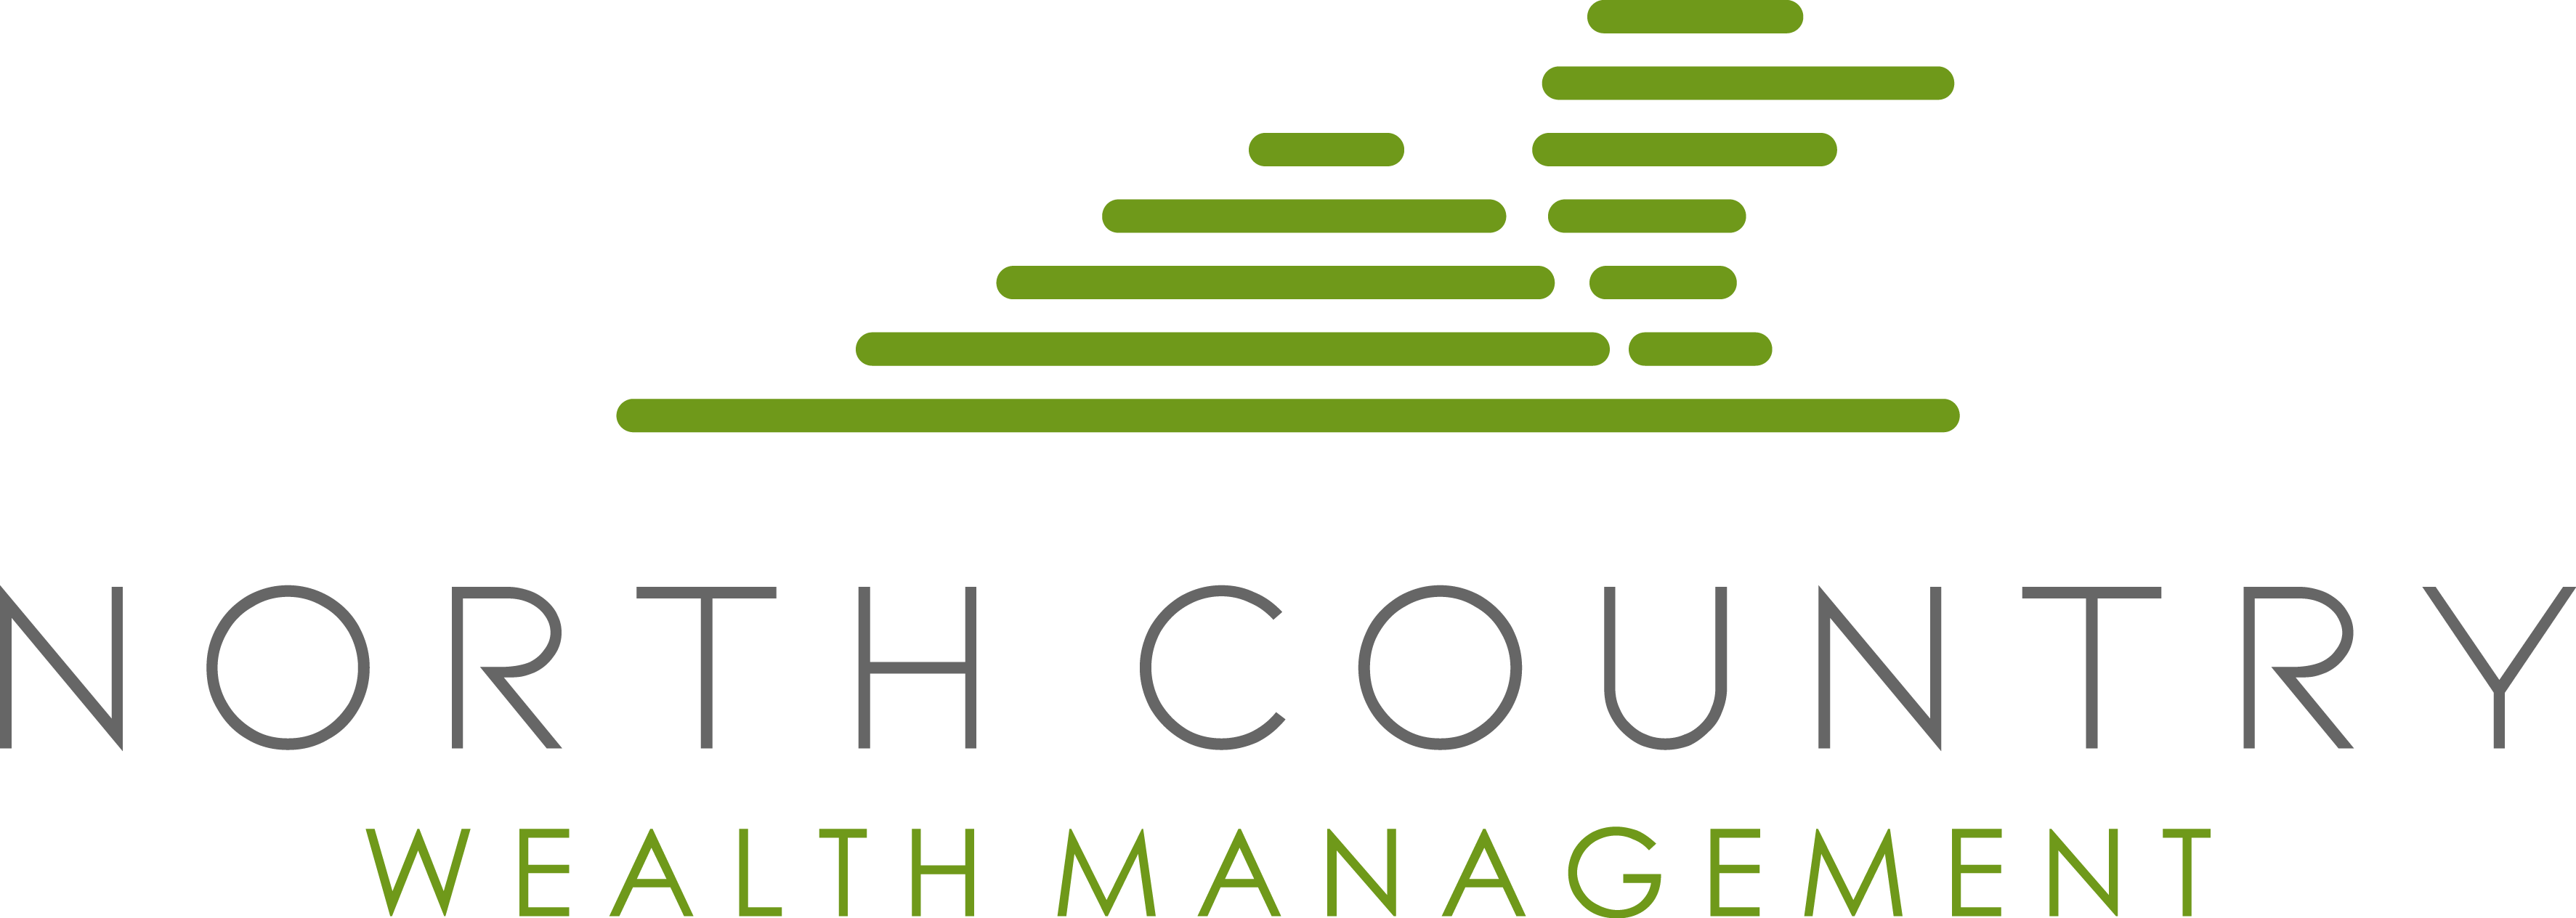 Logo for North Country Wealth Management